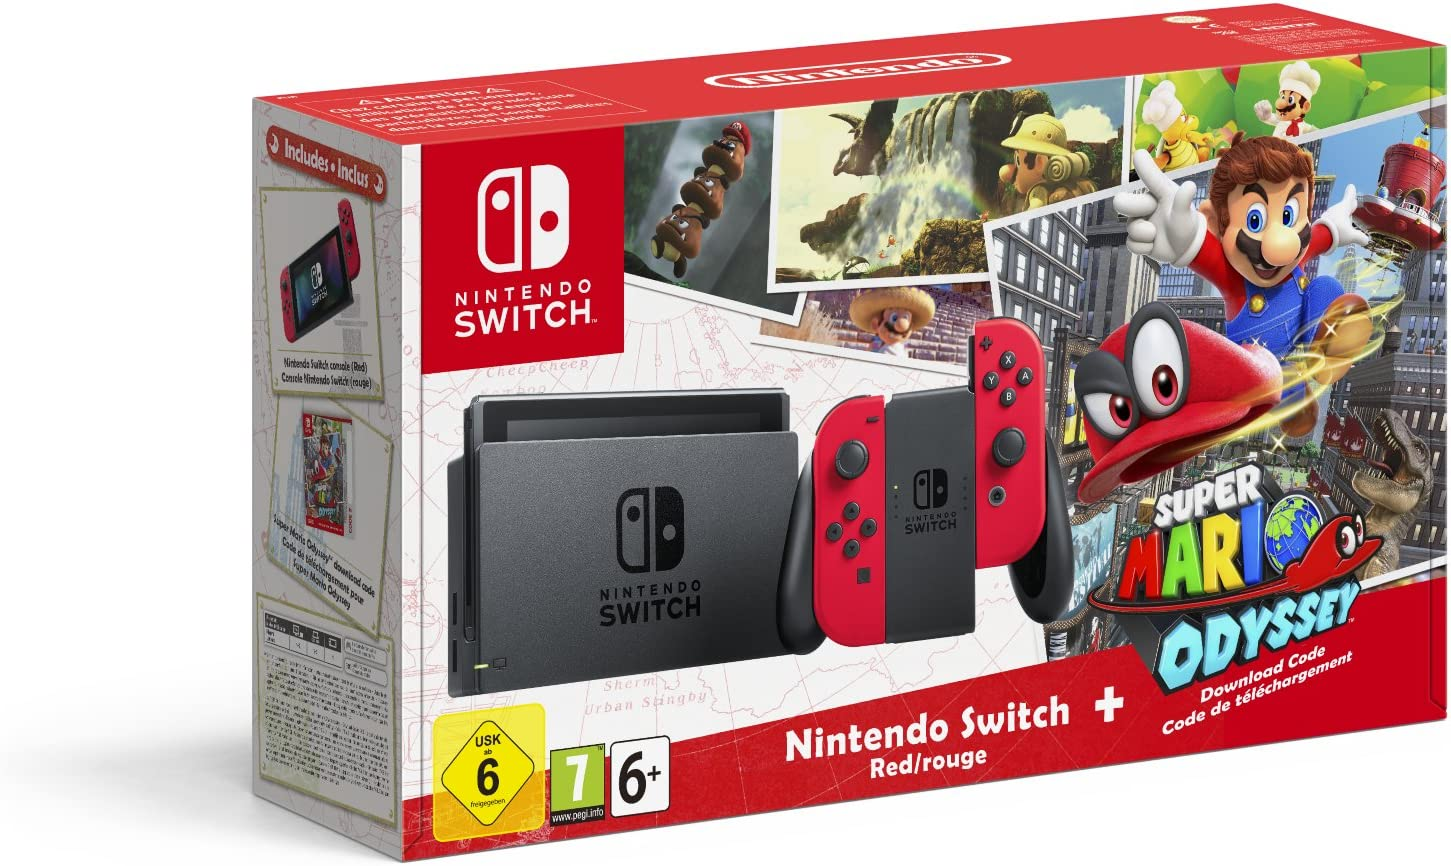 Nintendo Switch - Consola + Super Mario Odyssey Bundle (Código Descarga): Amazon.es: Videojuegos